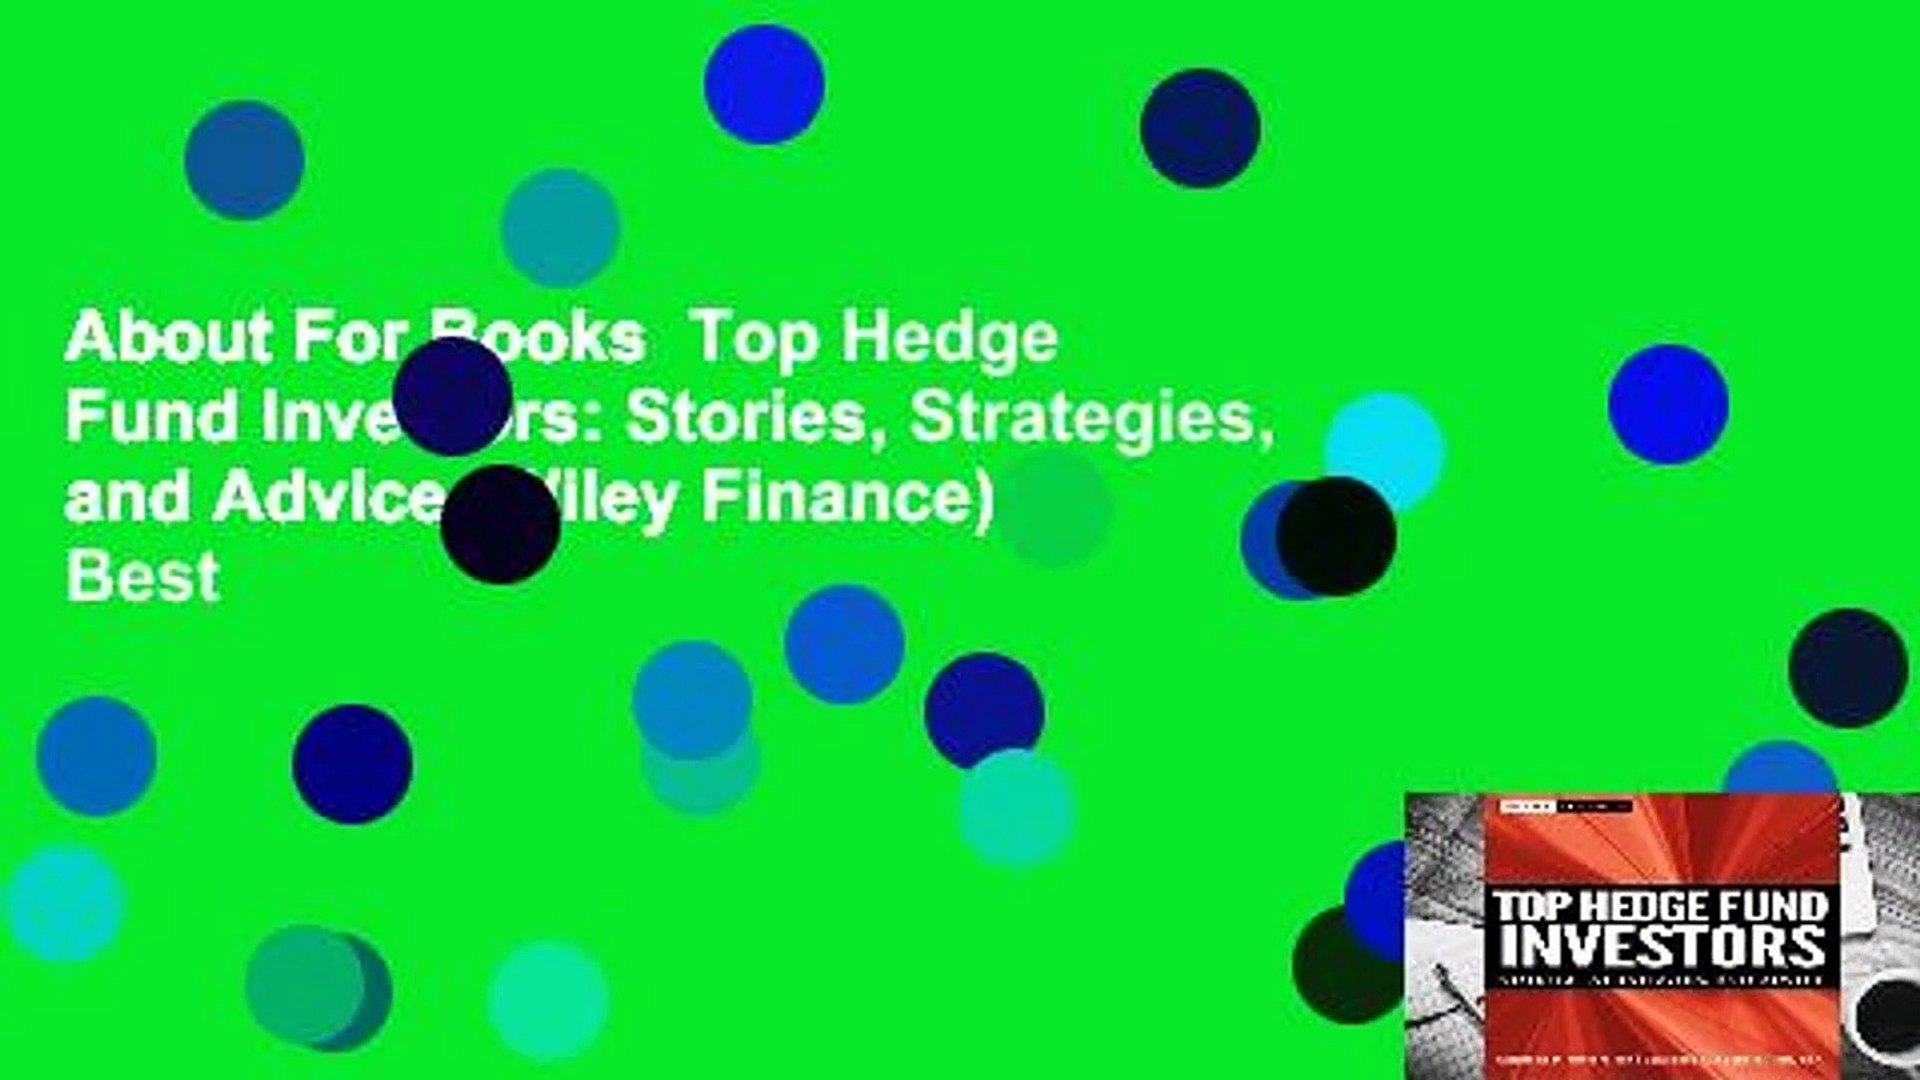 About For Books Top Hedge Fund Investors: Stories, Strategies, and Advice  (Wiley Finance) Best